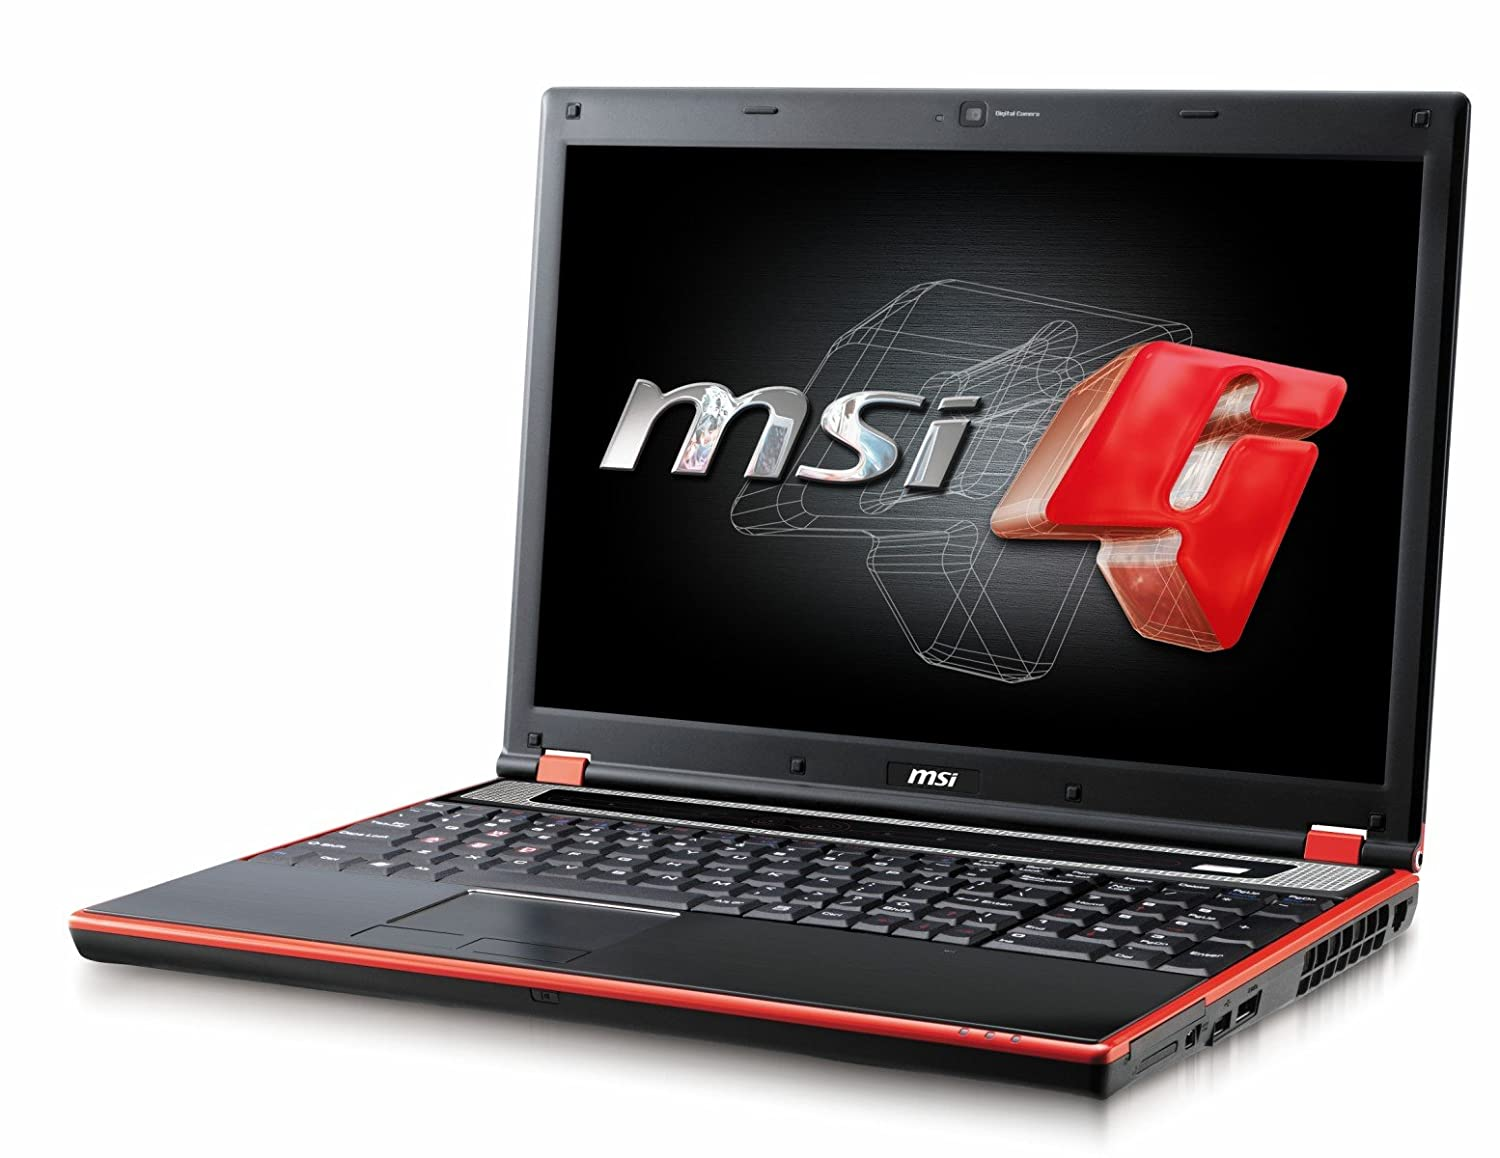 MSI Megabook GT735 GT725-210UK ordenador portatil: Amazon.es: Electrónica